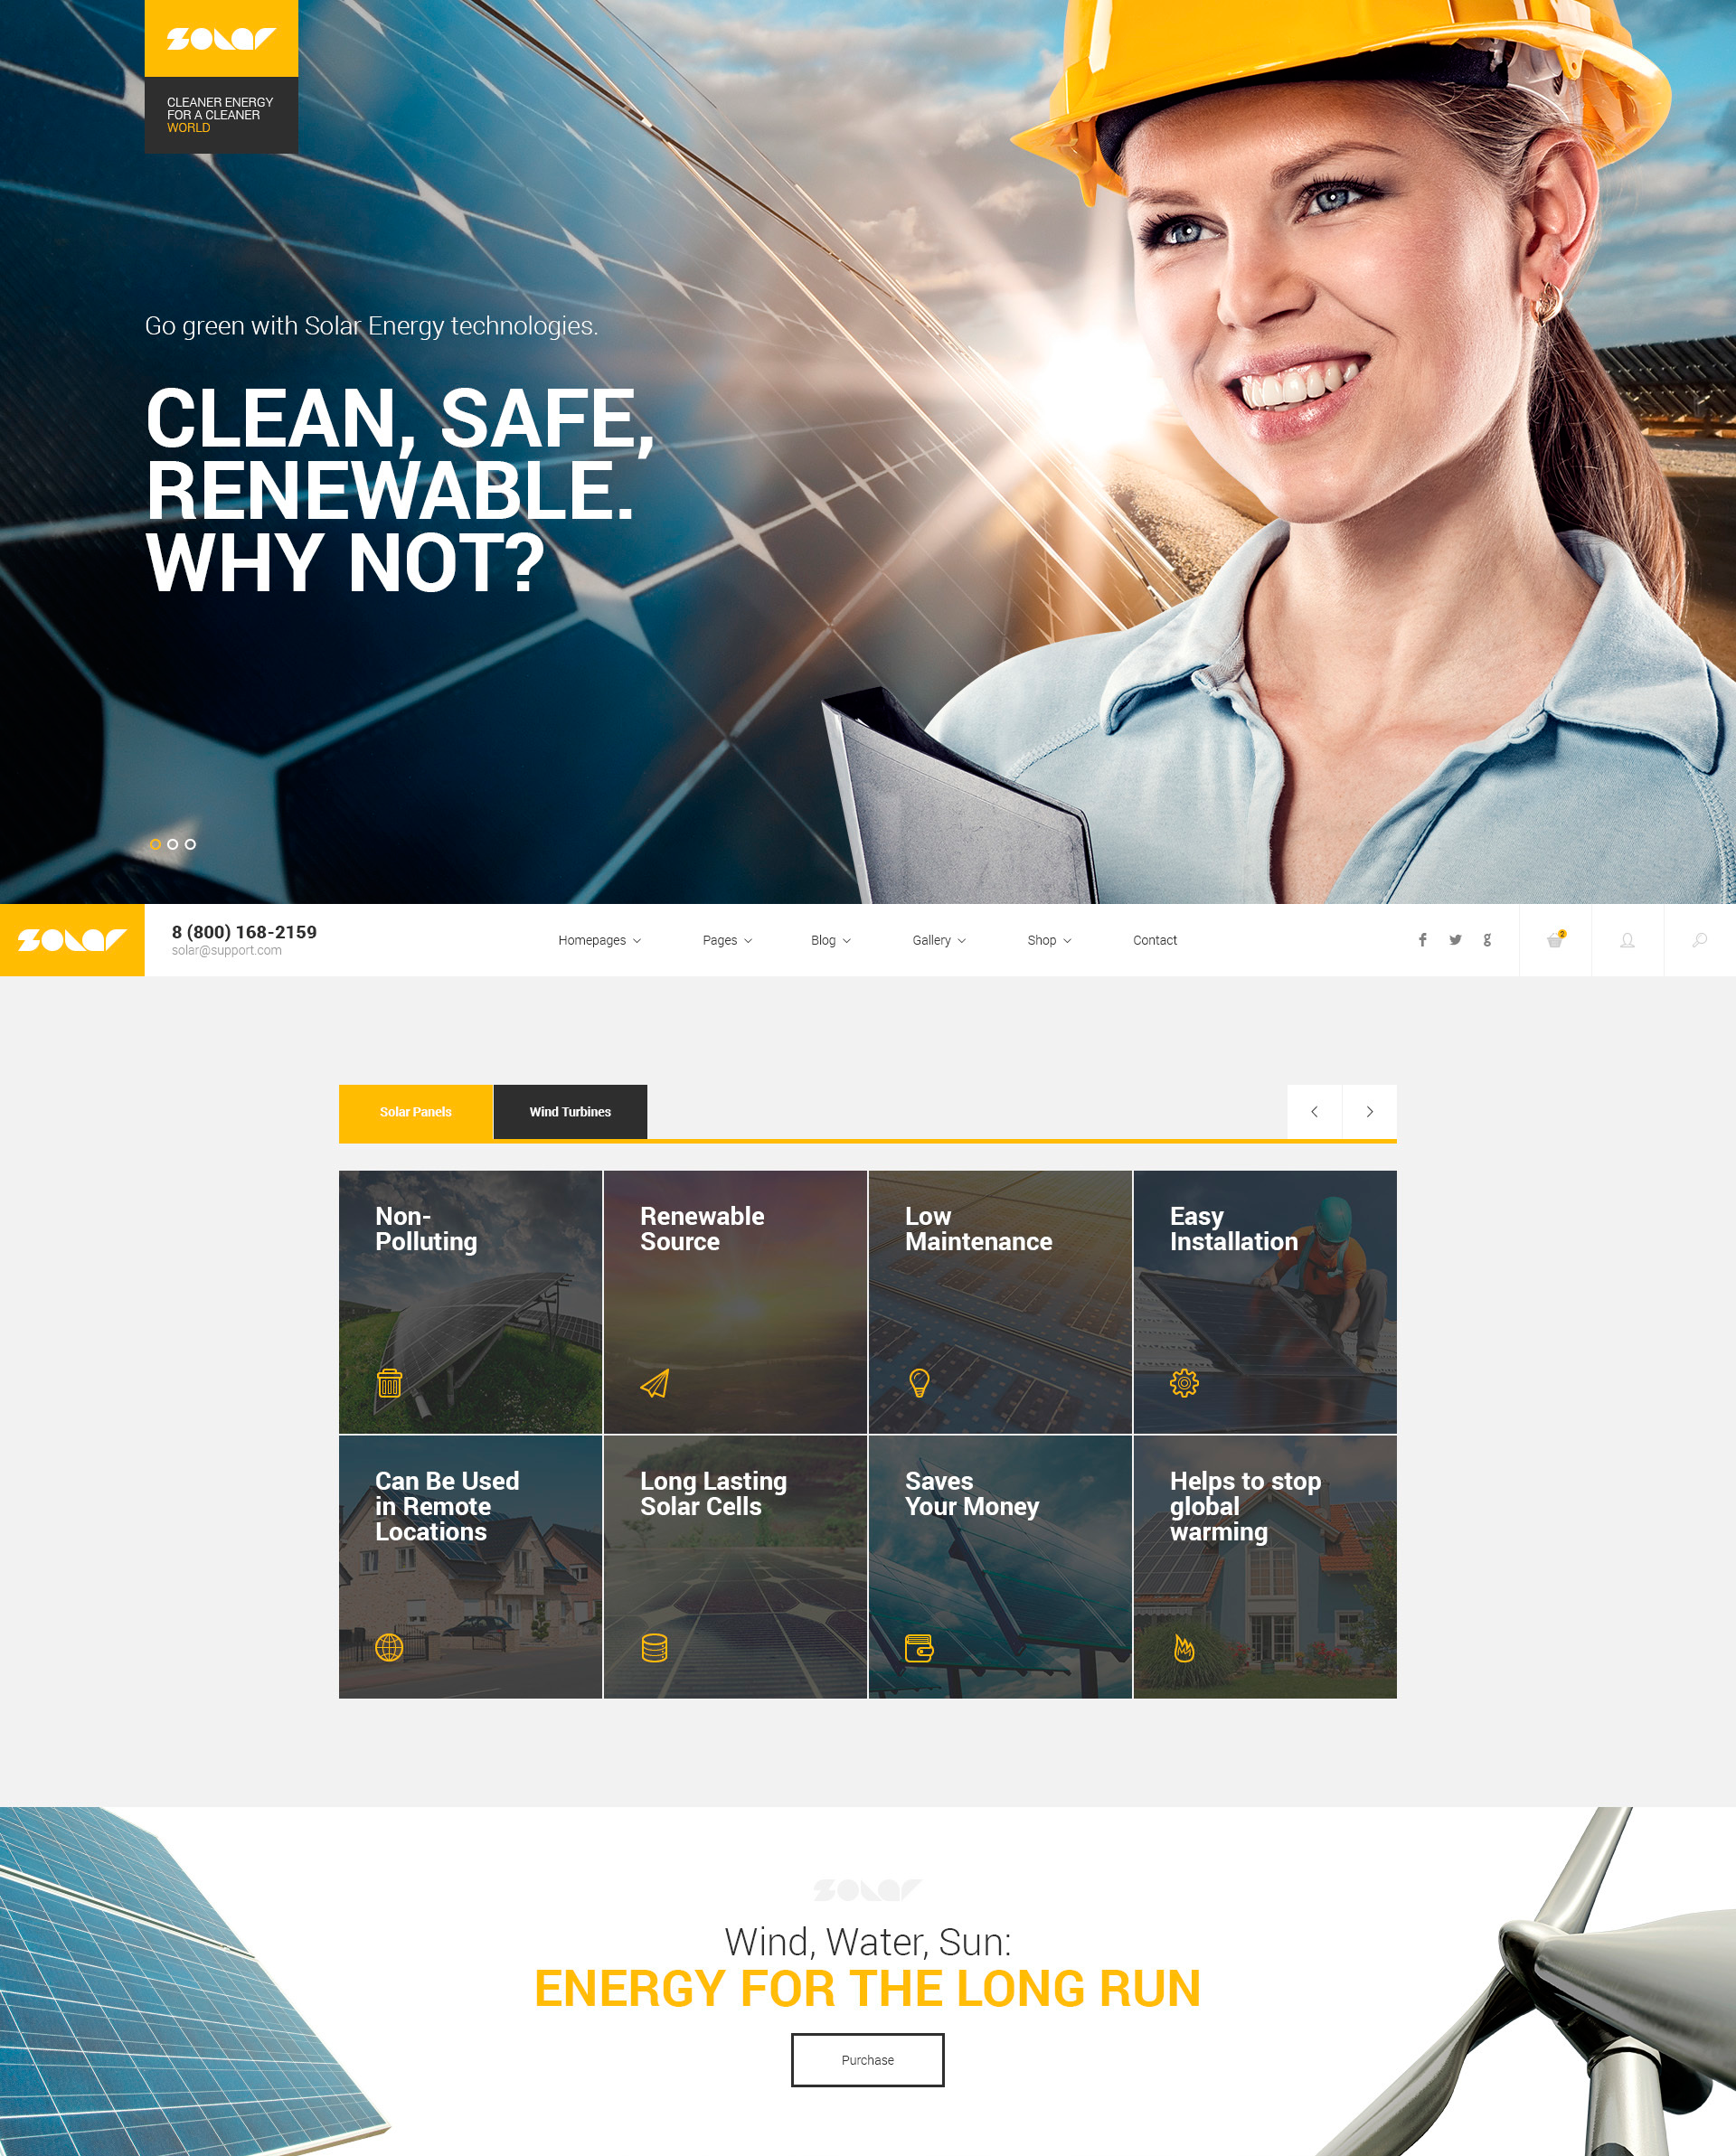 Solar Energy - Renewable Energy Technologies WordPress Theme